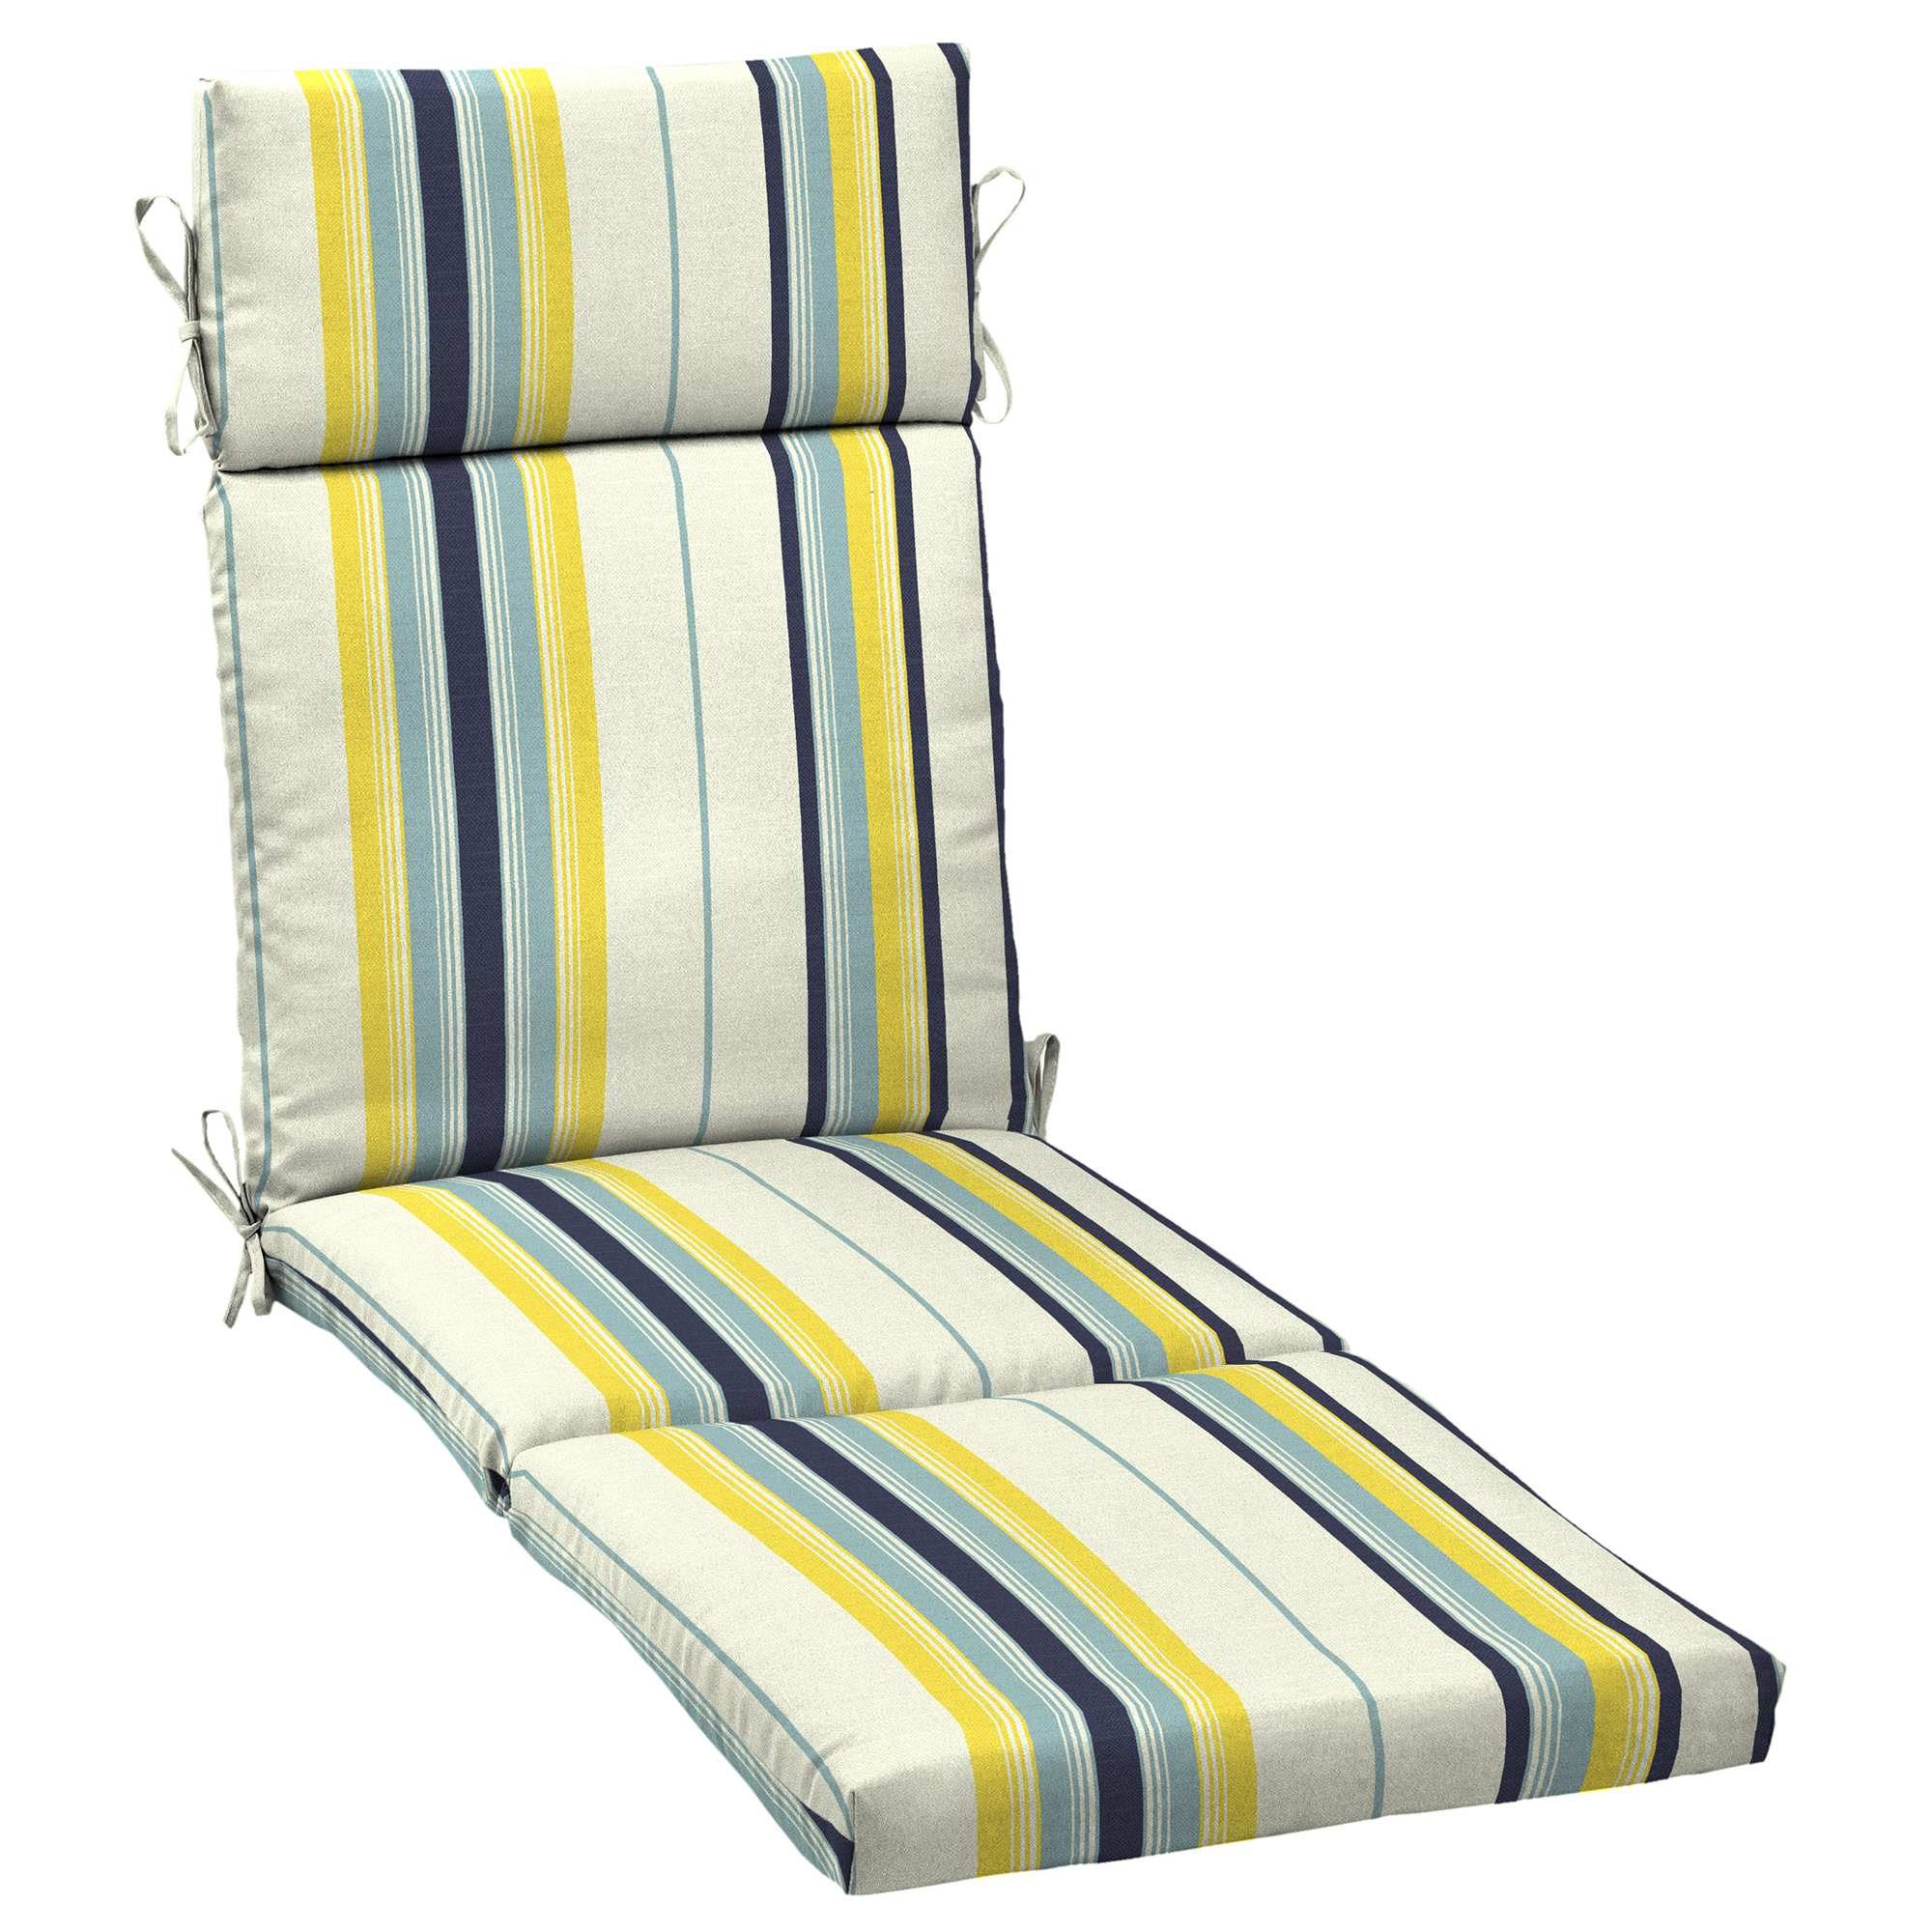 Mainstays Yellow Bell Gardens Stripe Outdoor Patio Chaise Lounge Cushion 21 In W X 72 D 4 H